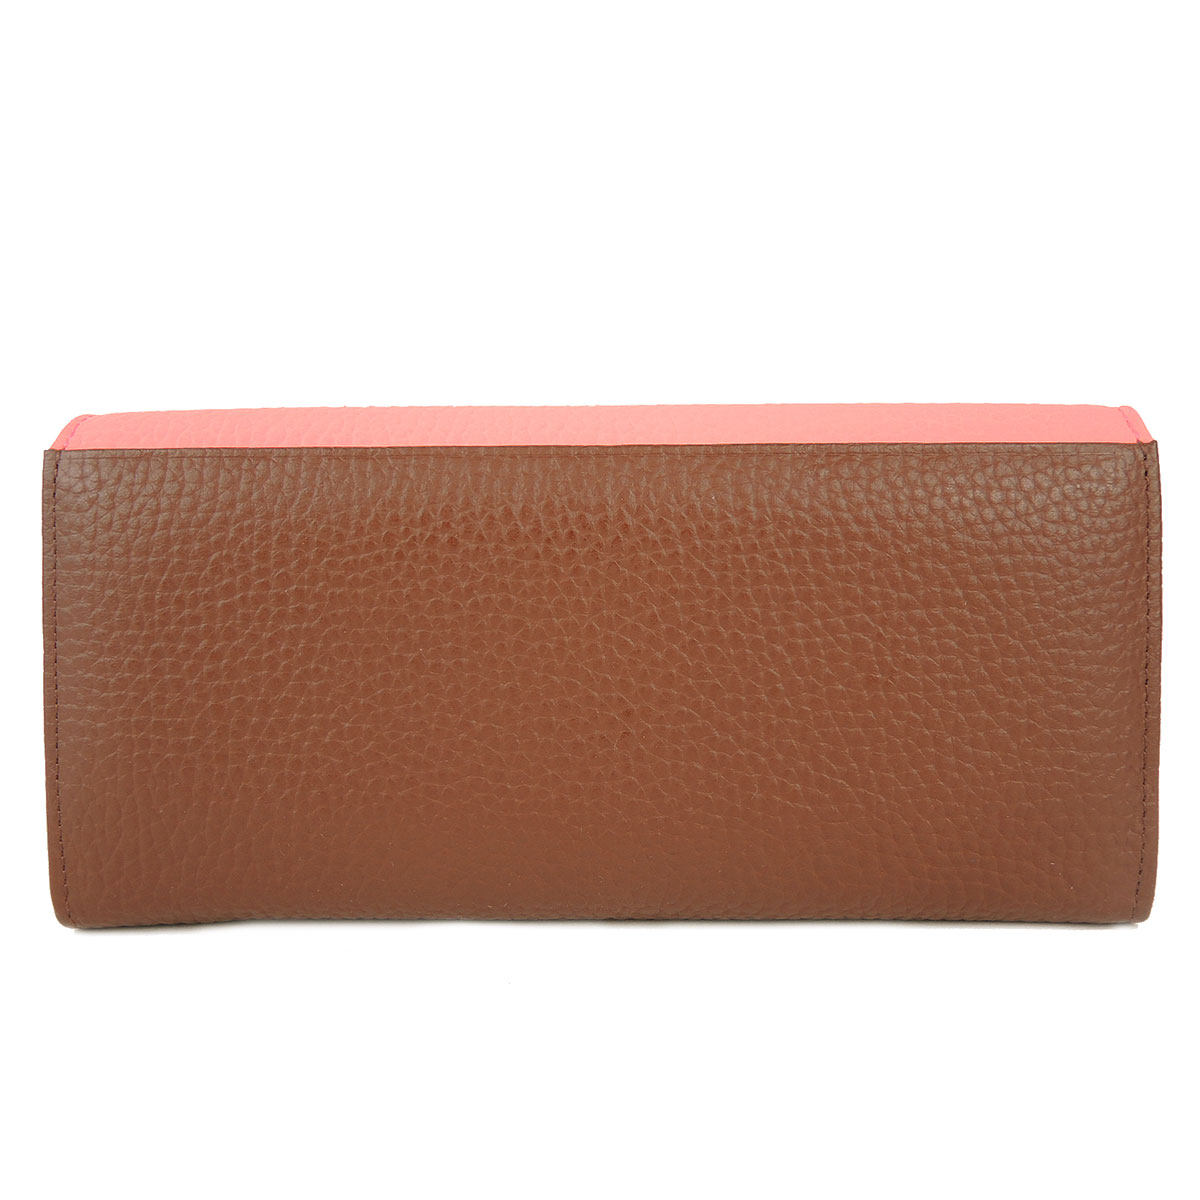 tsumori chisato CARRY long wallet shrink duo wallet ladies 57661